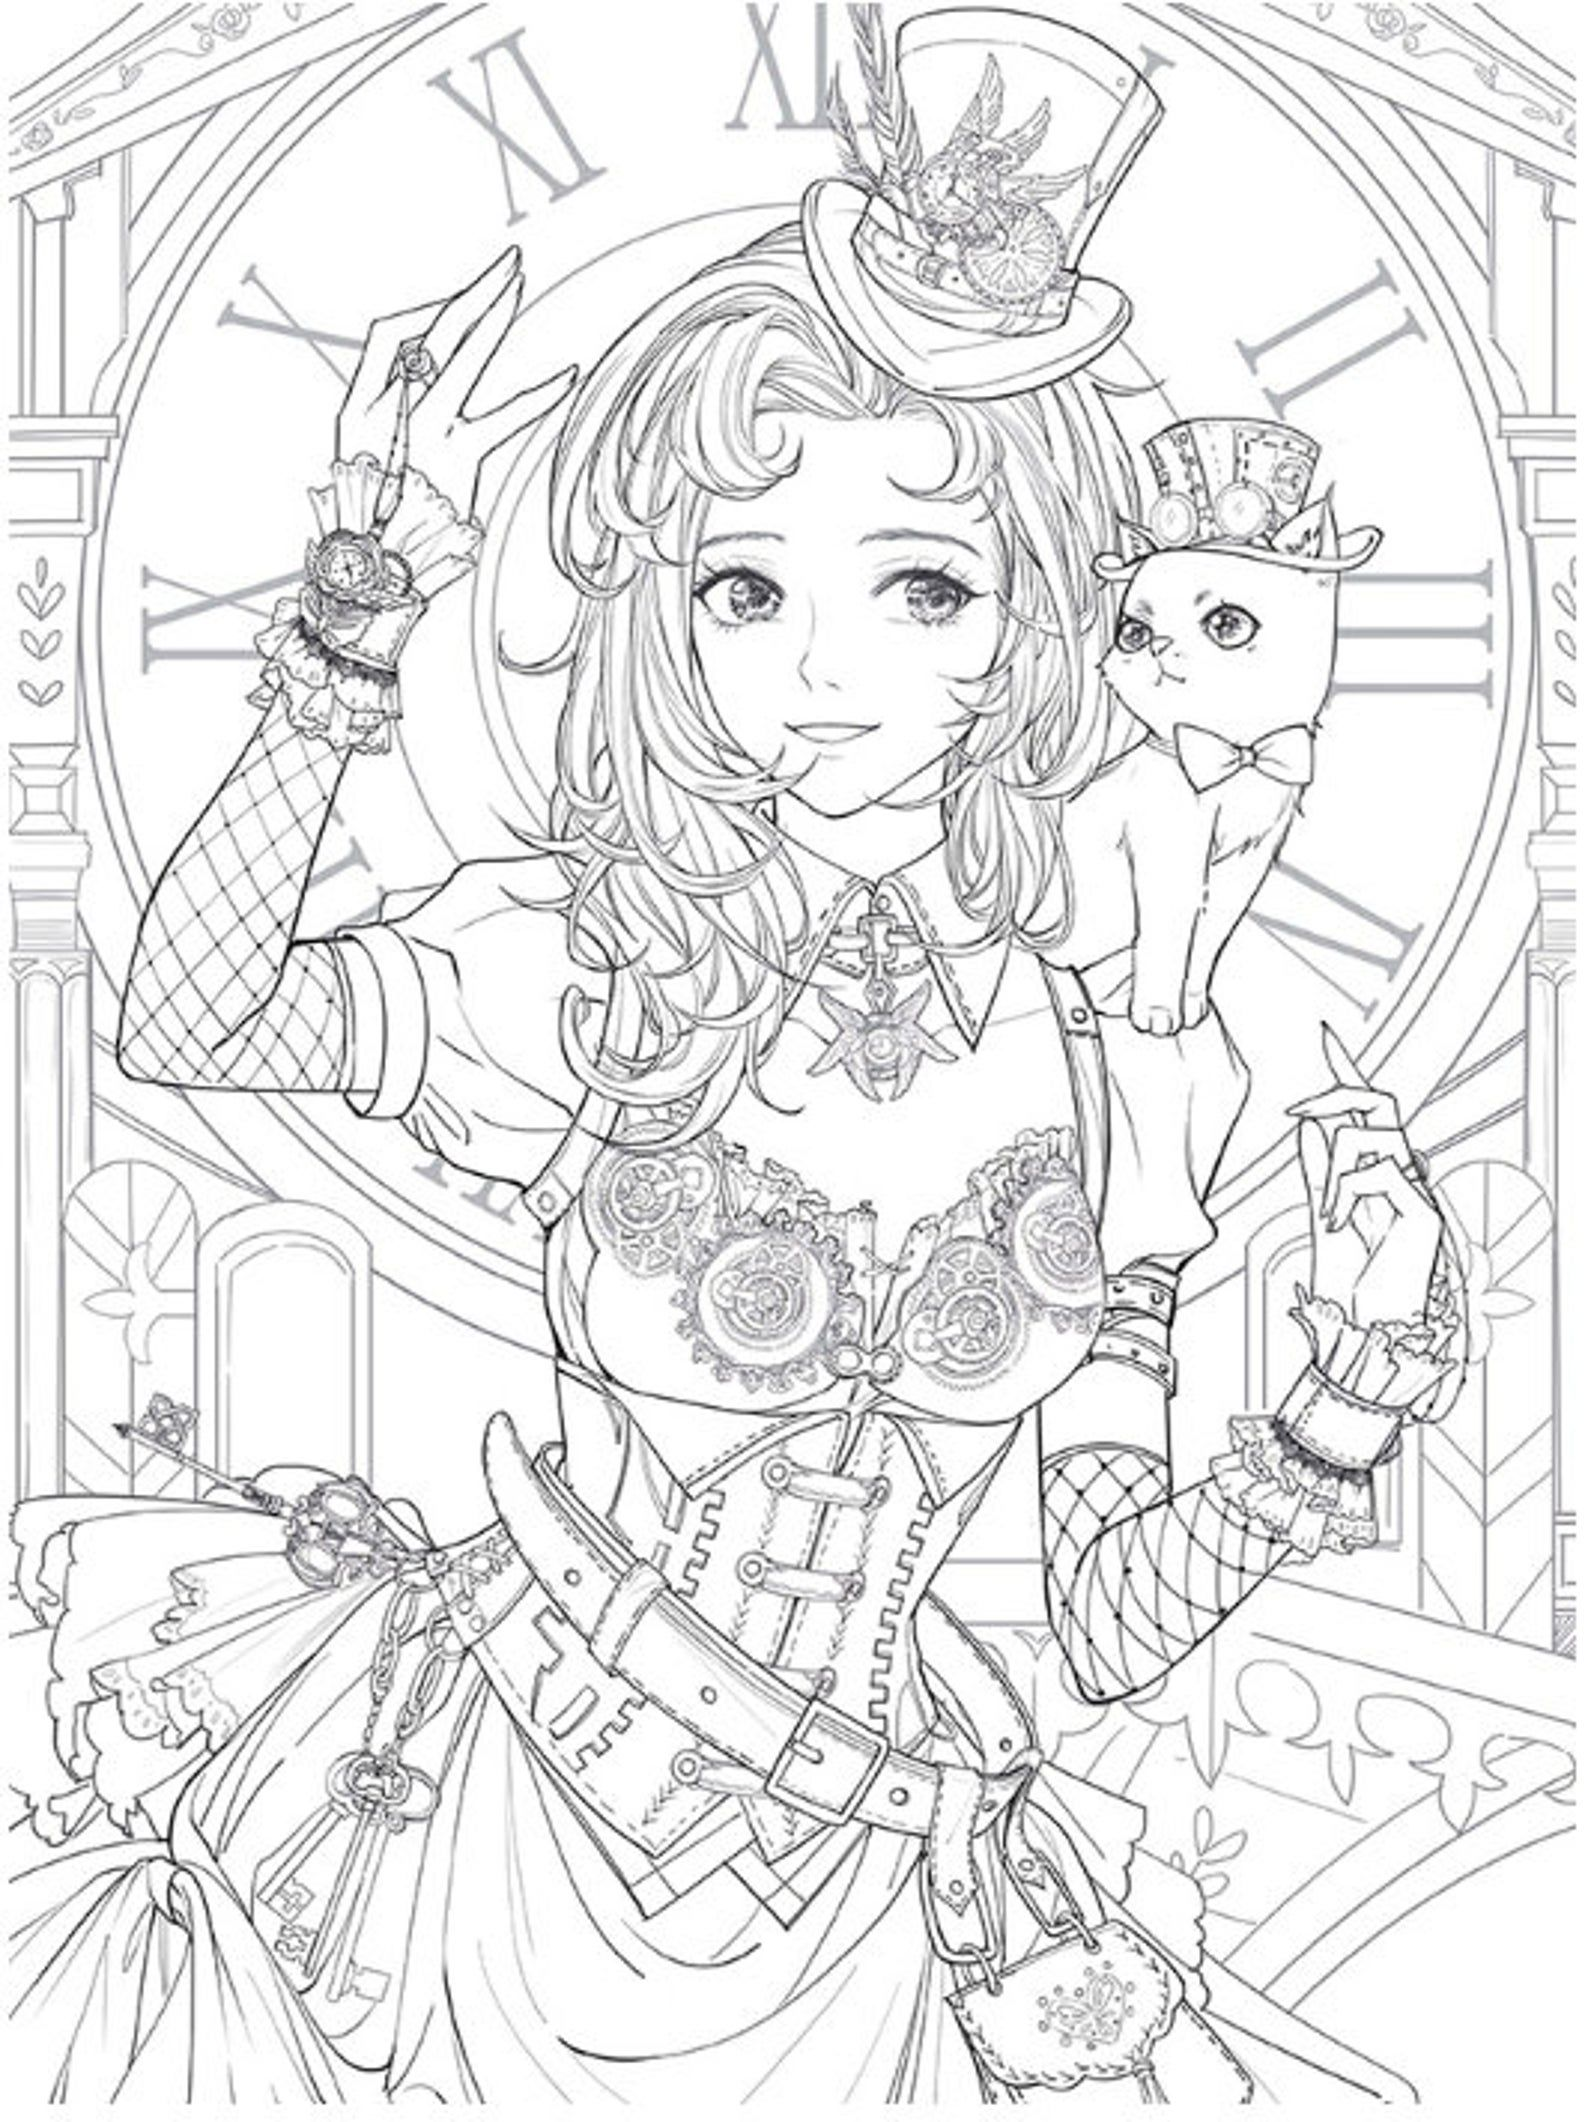 Masquerade Coloring Book Custome Play Chinese Coloring Book Etsy Steampunk Coloring Fairy Coloring Pages Coloring Books